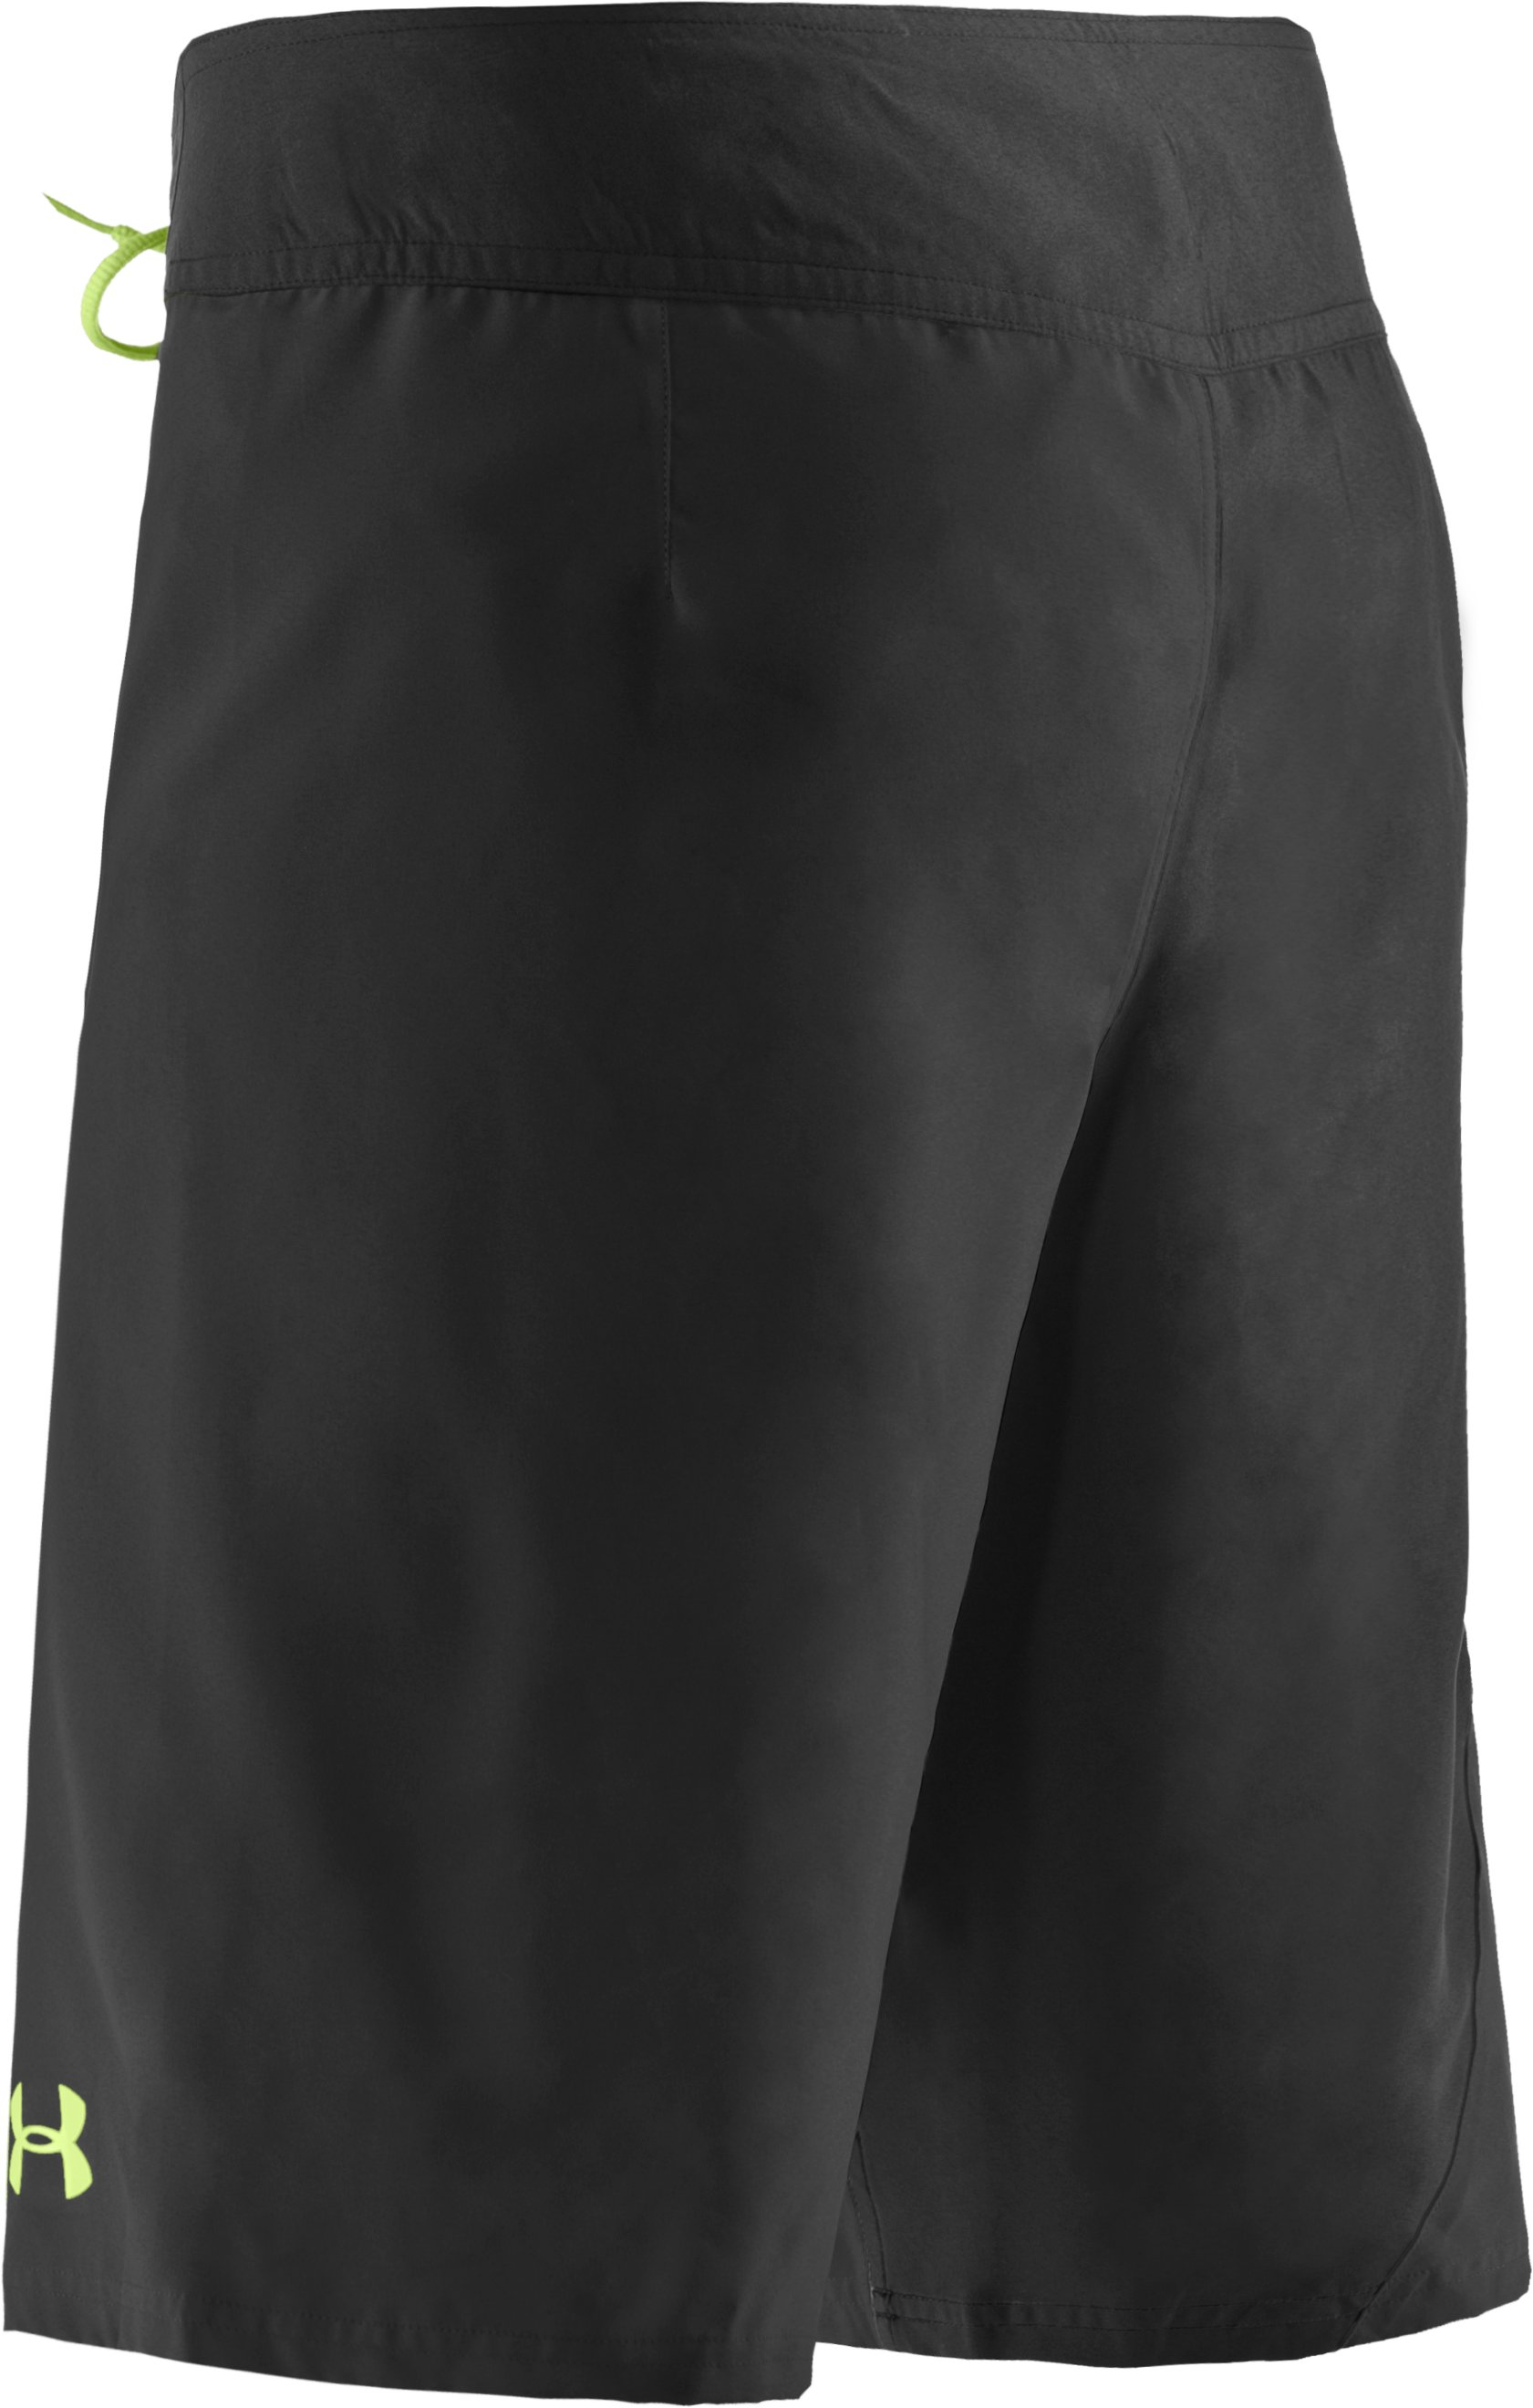 Men's UA Takahimi Board Shorts, Black , undefined